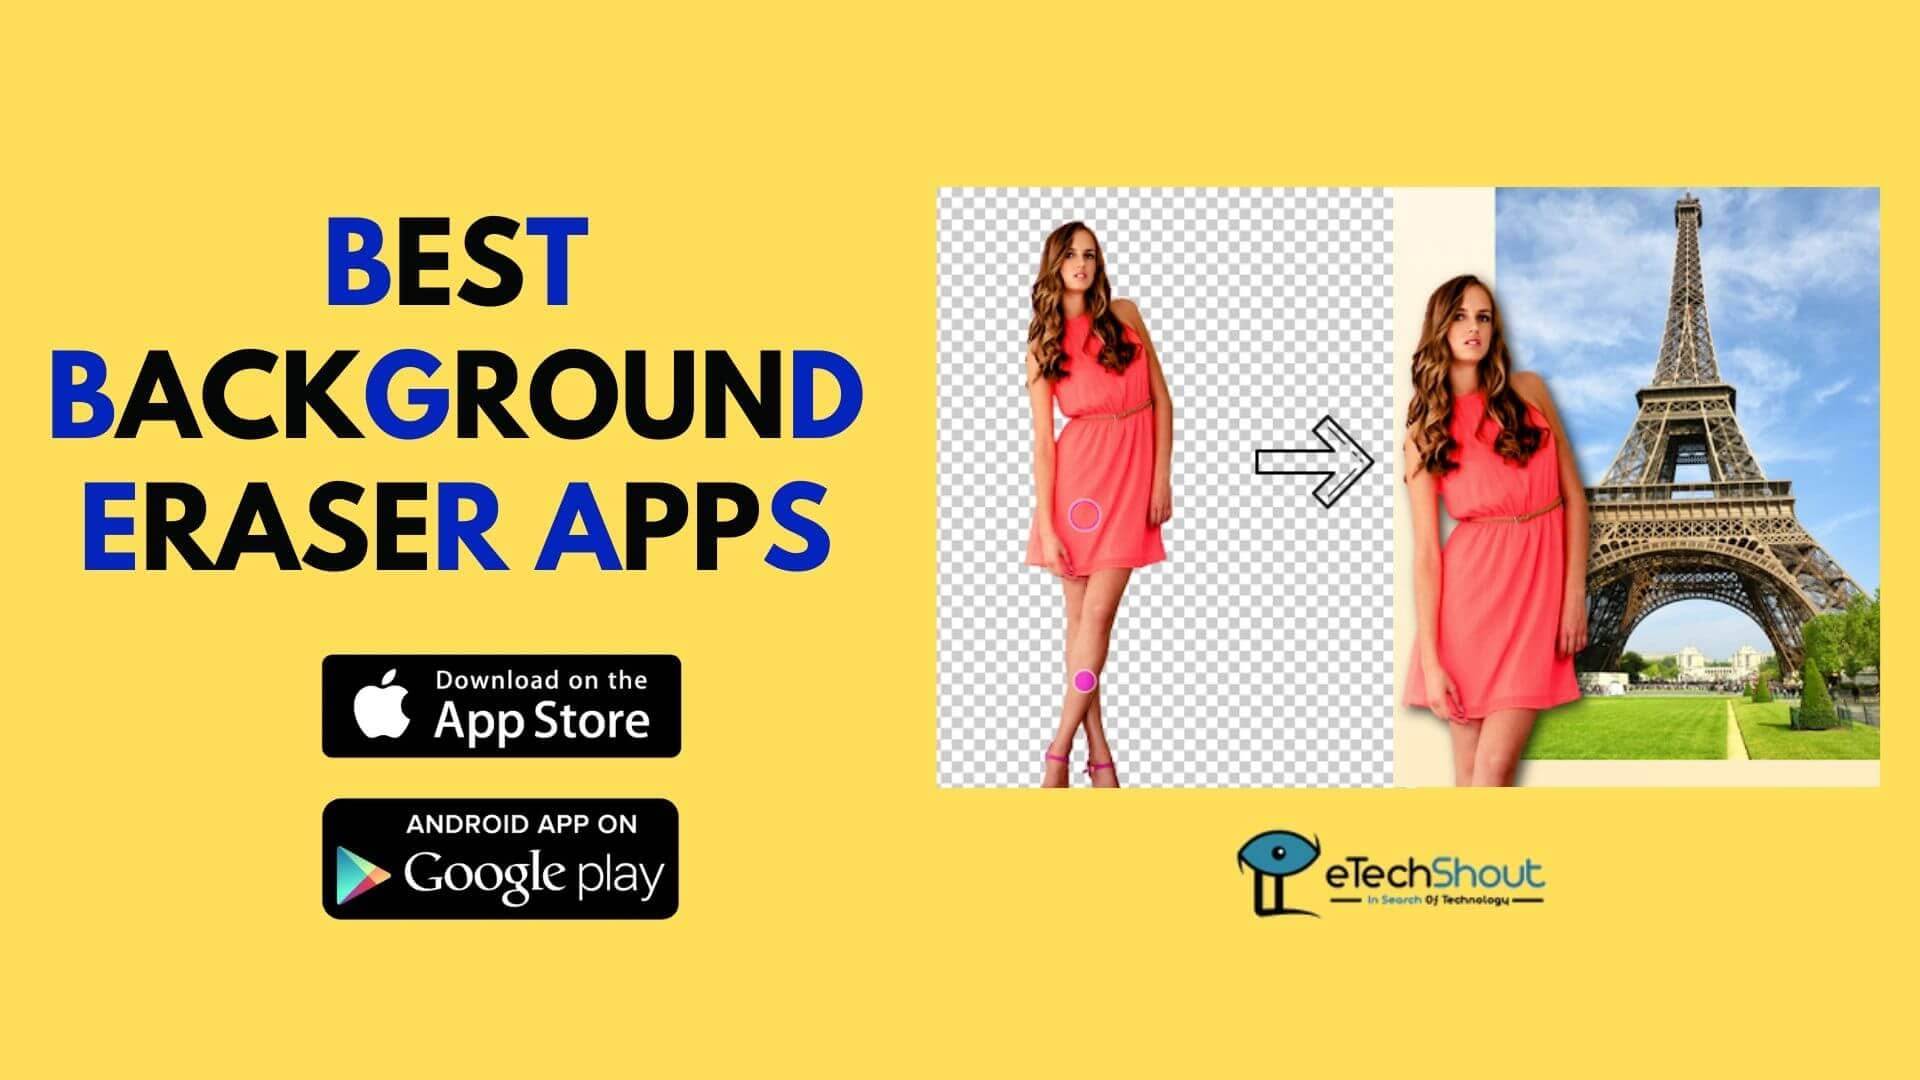 Best Background Eraser Apps